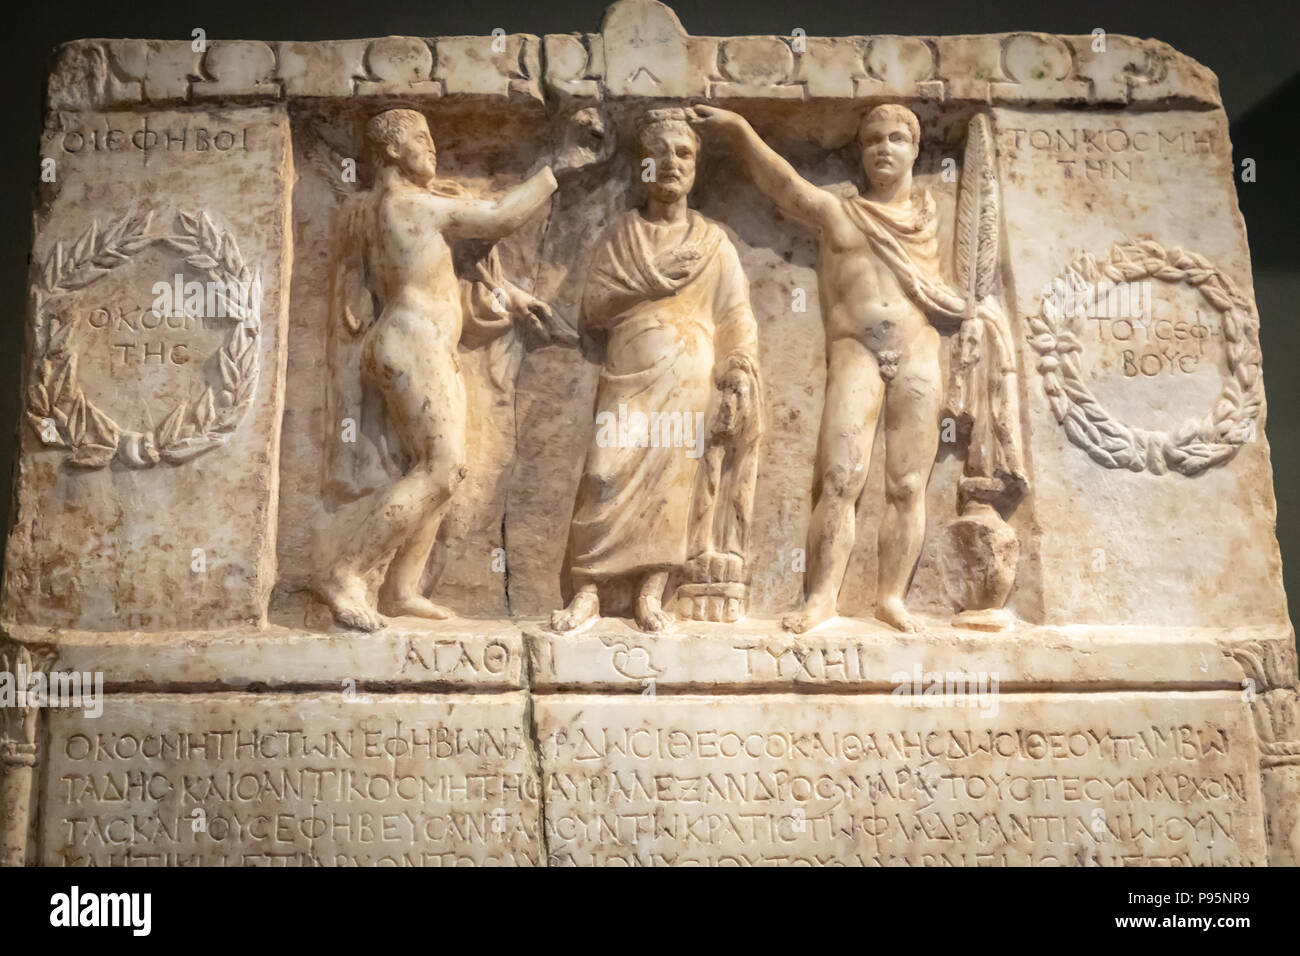 Stele Inscription of a Ephebic List, Naval Battle, Gymnasium Ephebes, Pentelic Marble, Found in Athens, 112 AD, - Stock Image